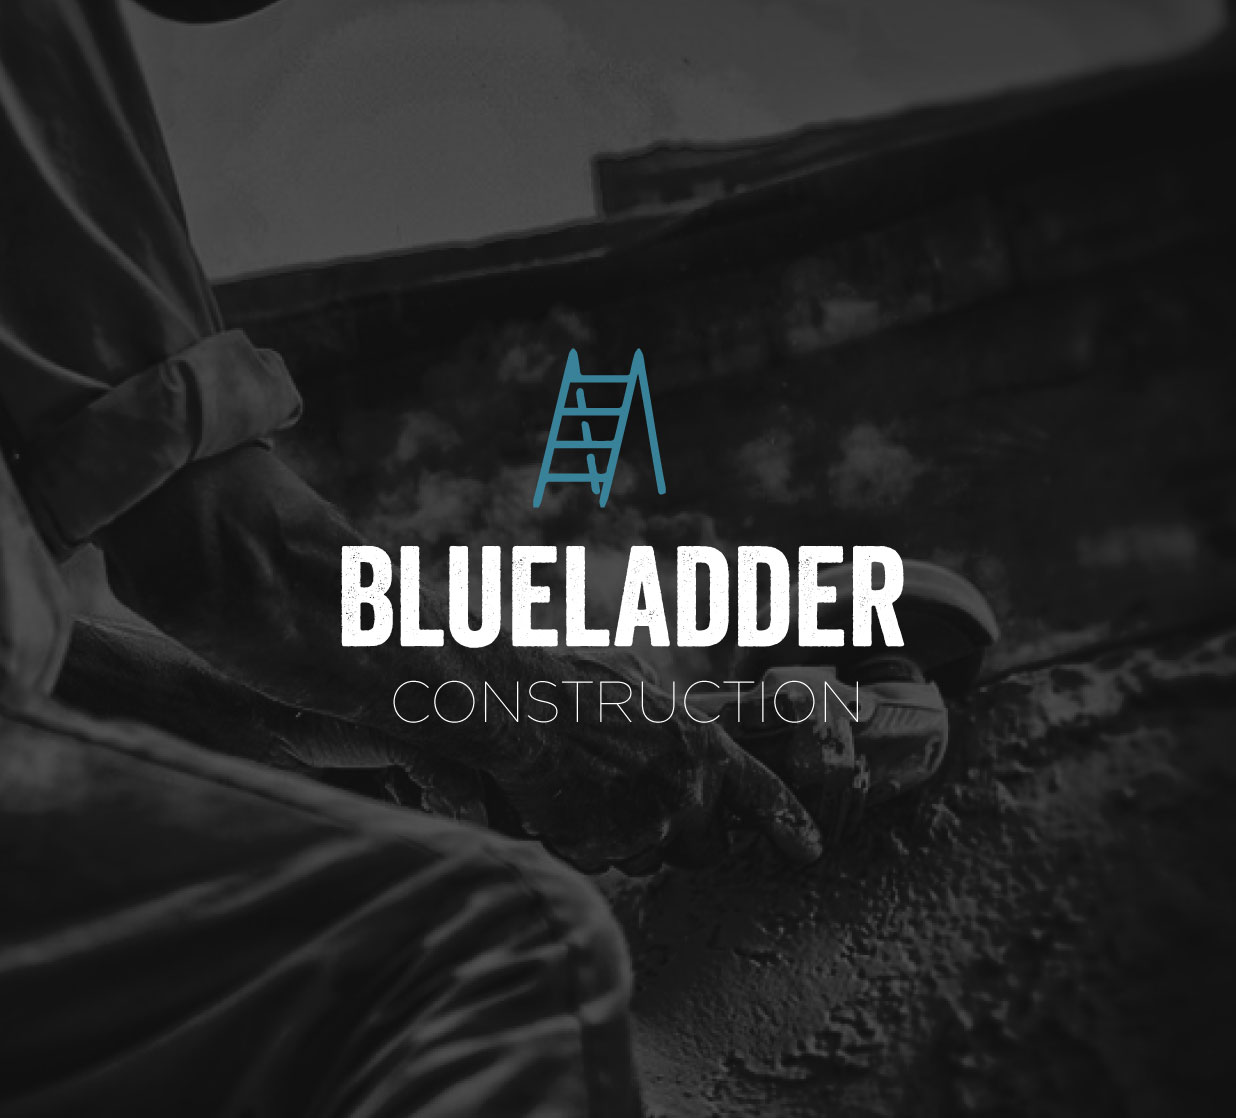 99 (Actually Good) Construction Company Name Ideas | Hook Agency